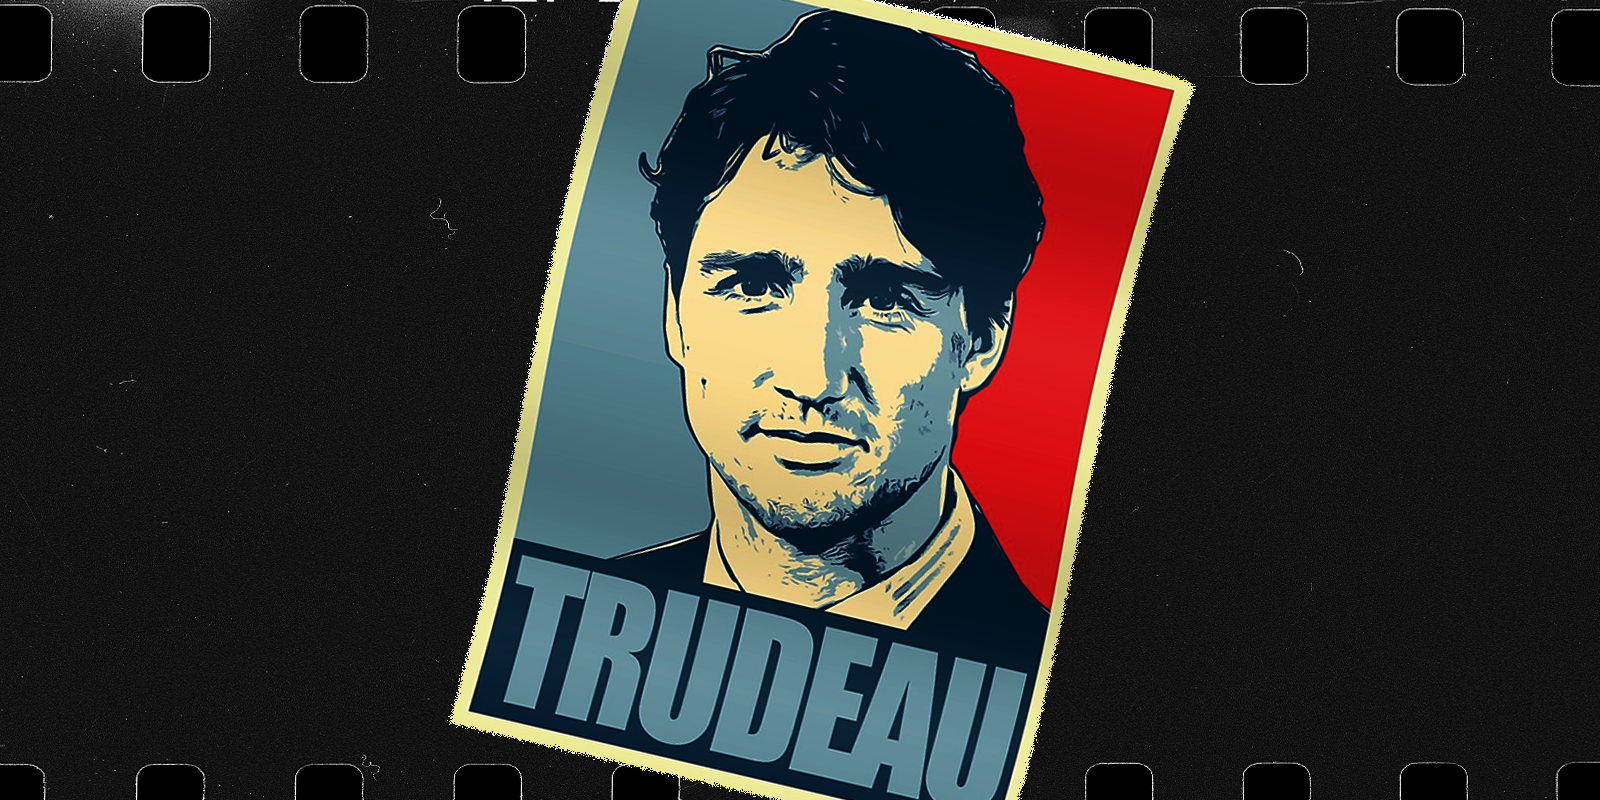 Obama was wrong to endorse Trudeau; Trudeau was wrong to accept it